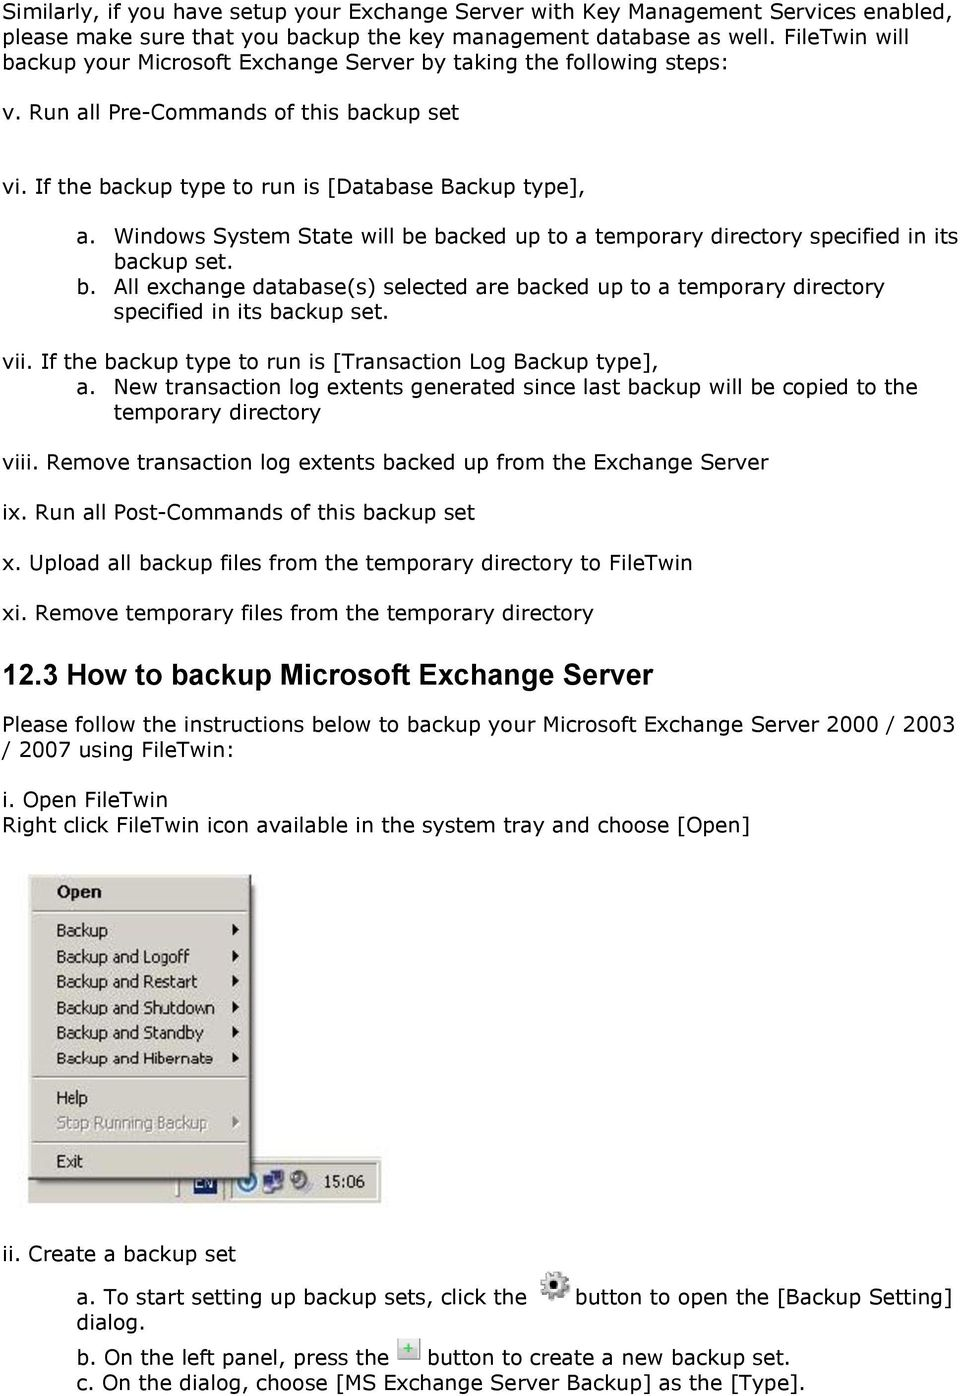 Windows System State will be backed up to a temporary directory specified in its backup set. b. All exchange database(s) selected are backed up to a temporary directory specified in its backup set.